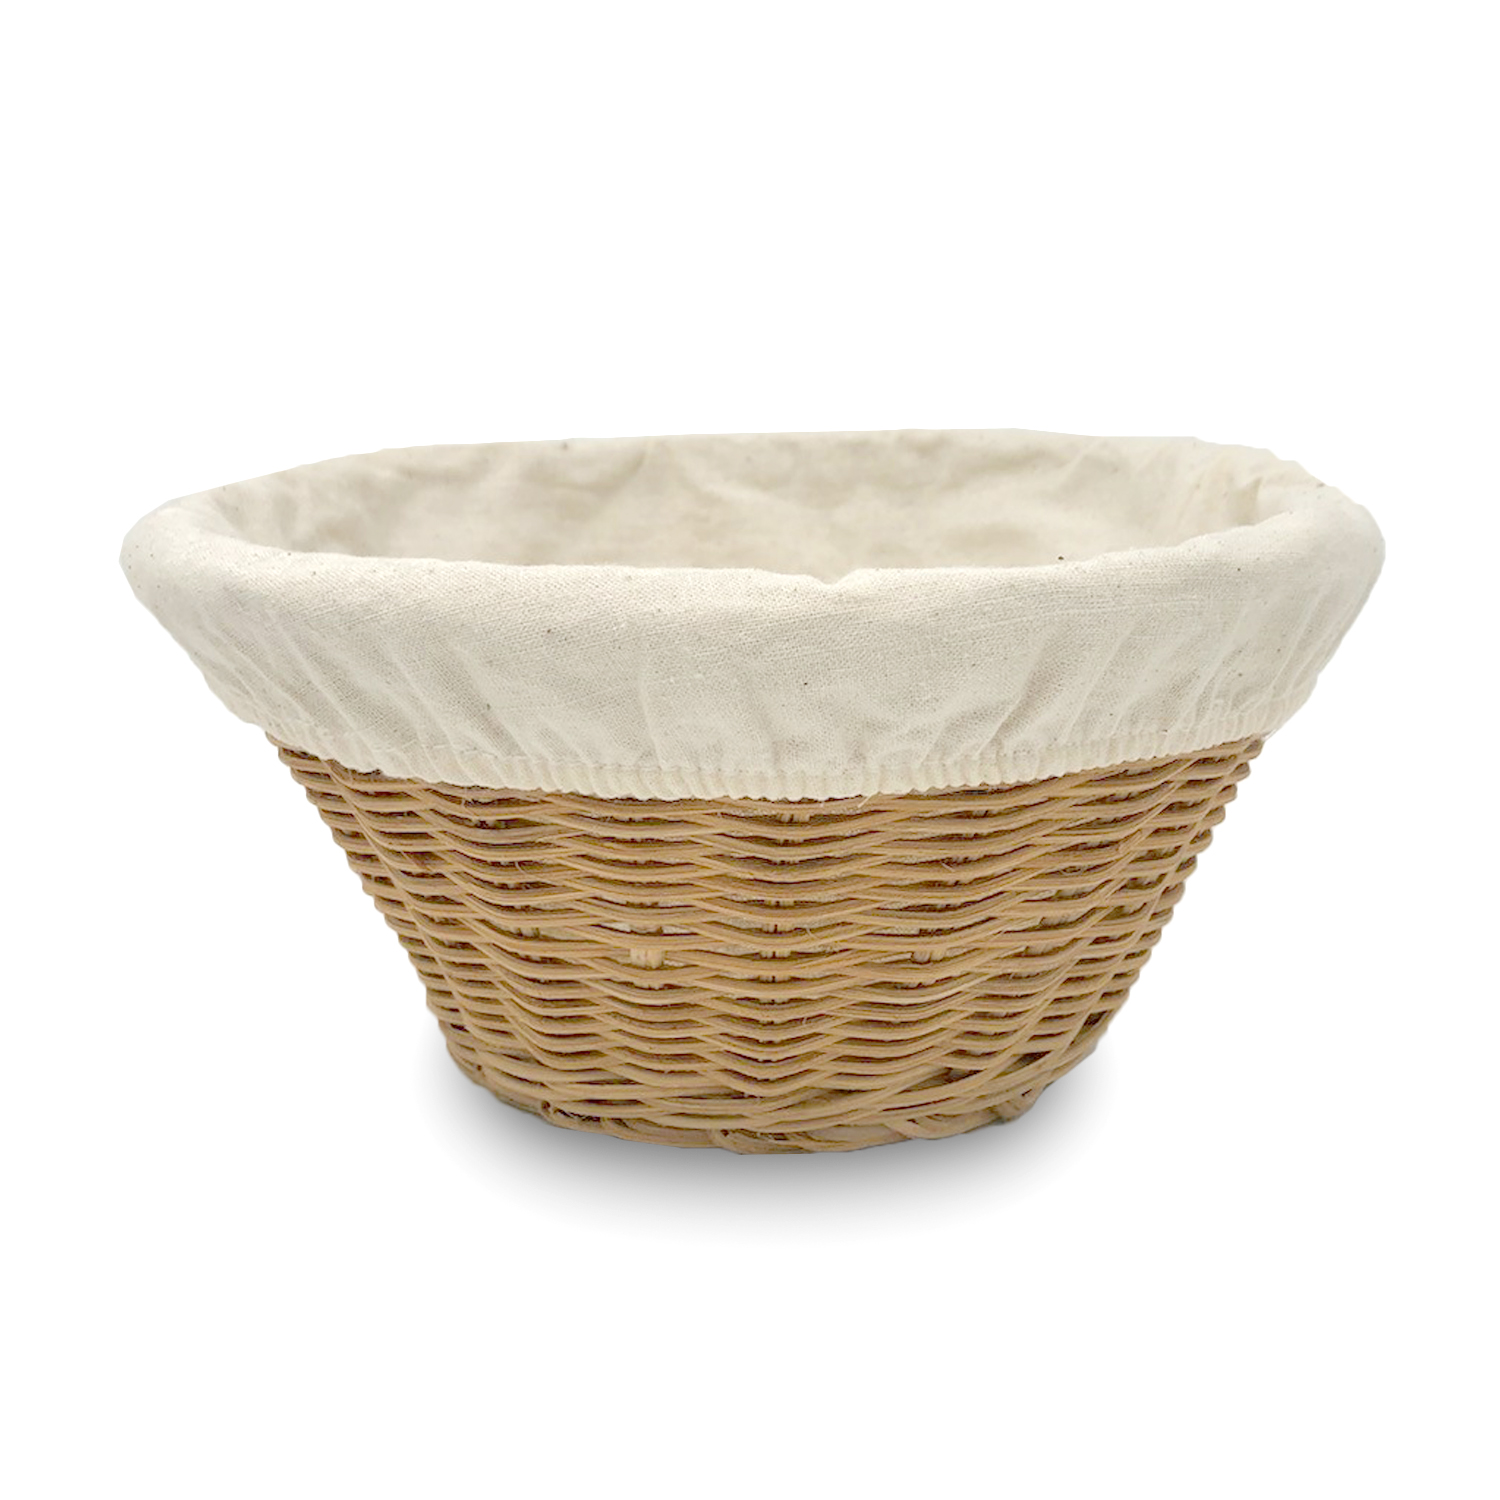 Small Round Rattan Utility Basket with Cloth Liner -Natural 7in